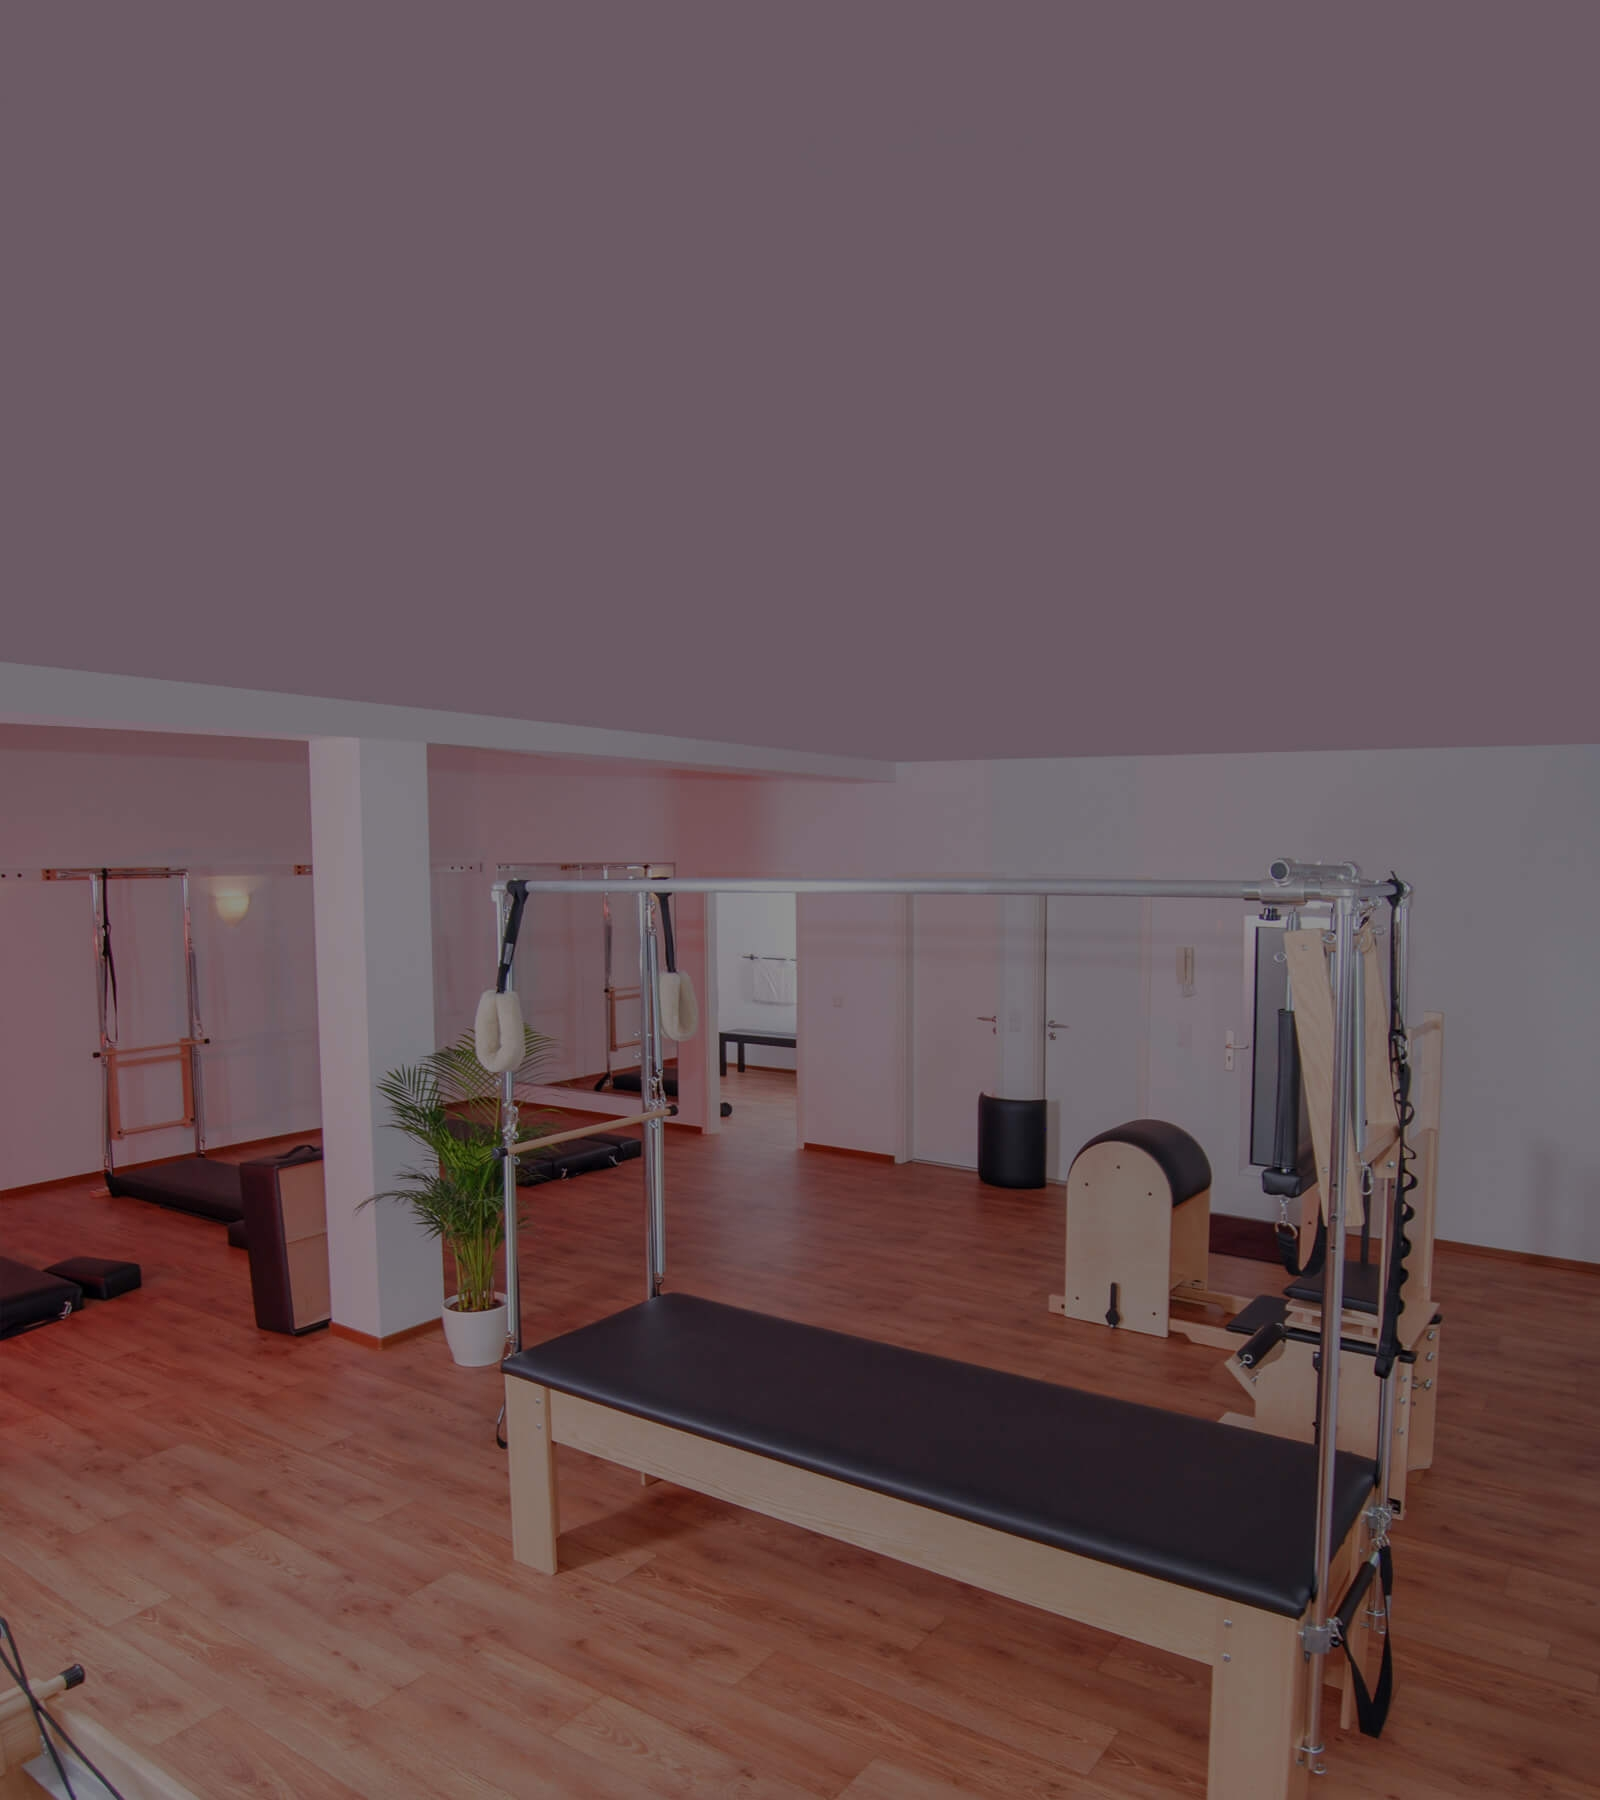 Retro PilatesBad Homburg